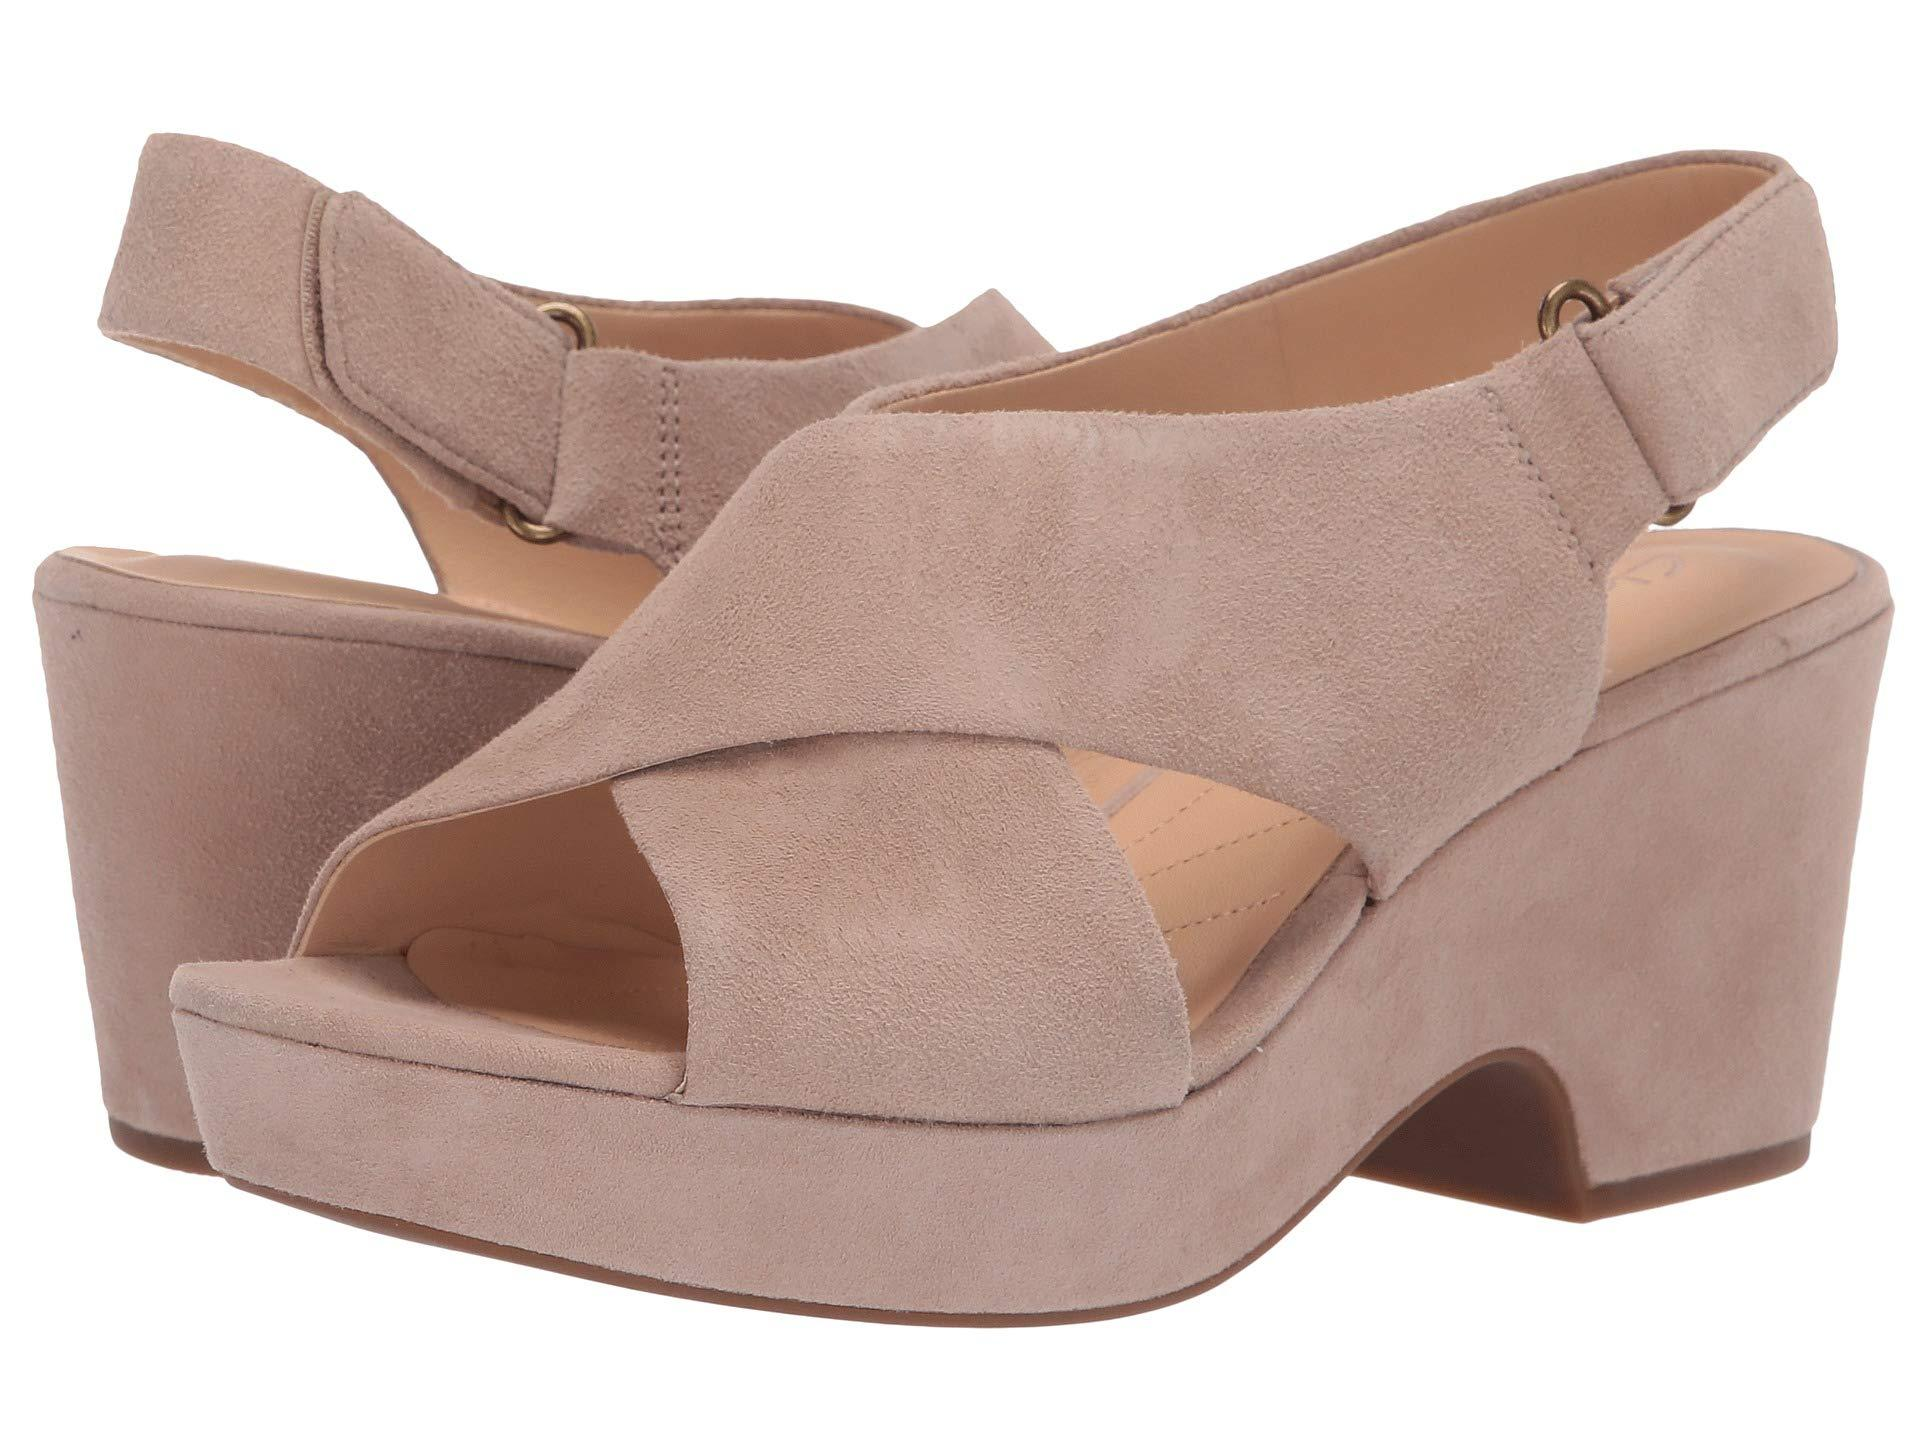 10c5ad776e3 Lyst - Clarks Maritsa Lara (sand Suede) Women s Wedge Shoes in Natural